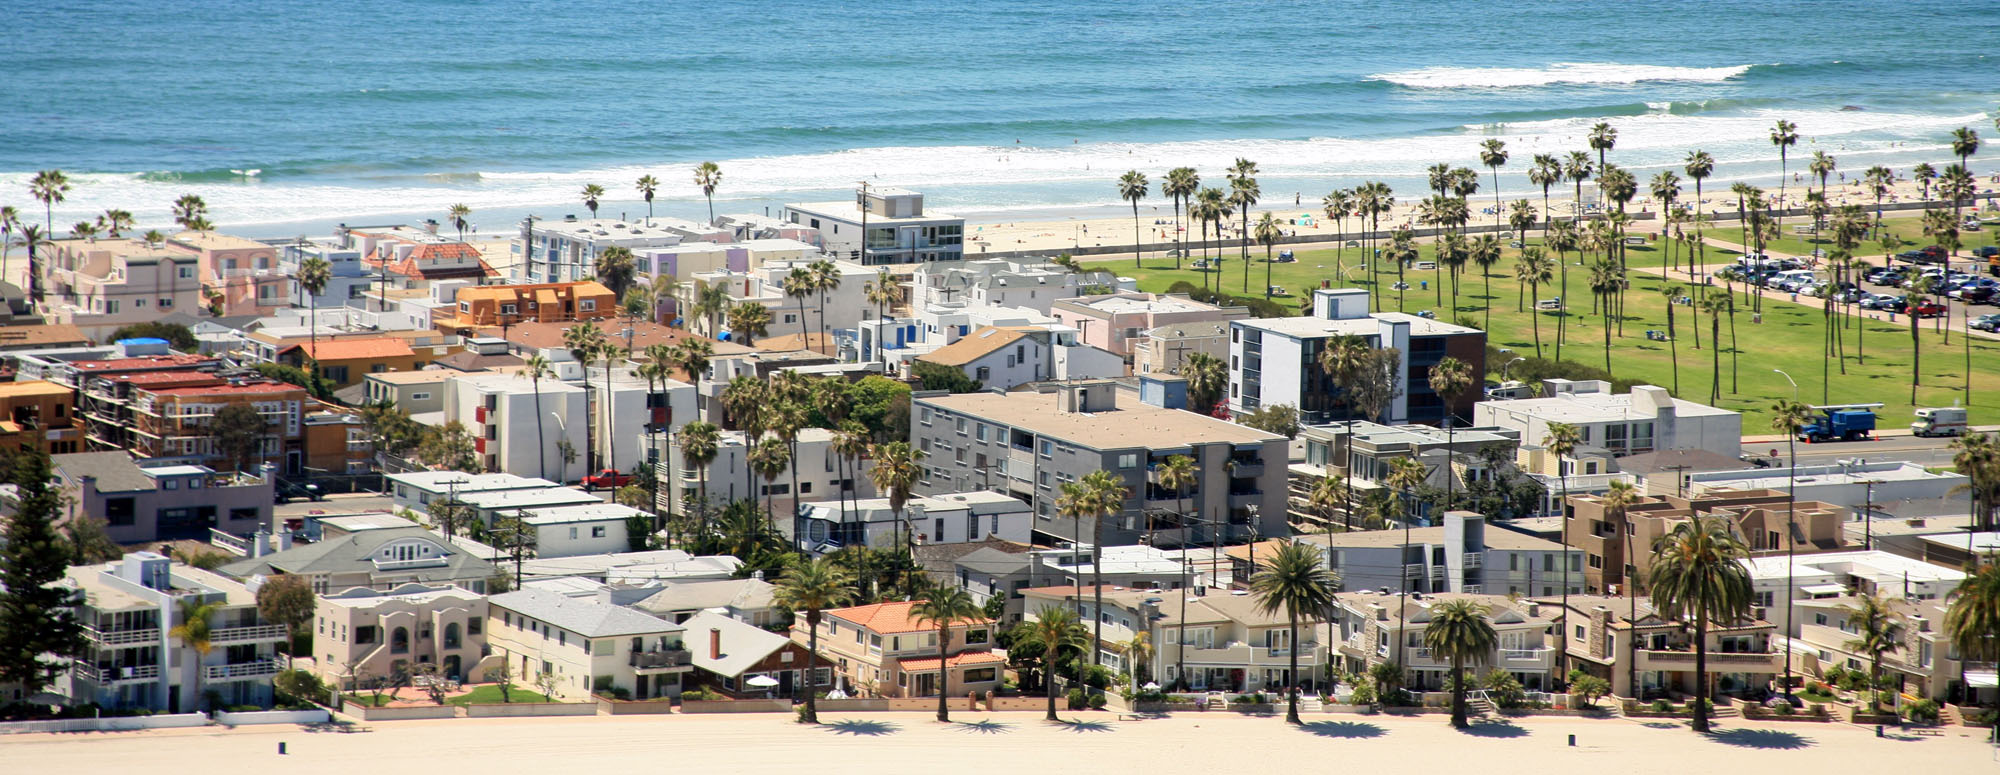 San Diego Beach Communities | Ocean Pacific Properties